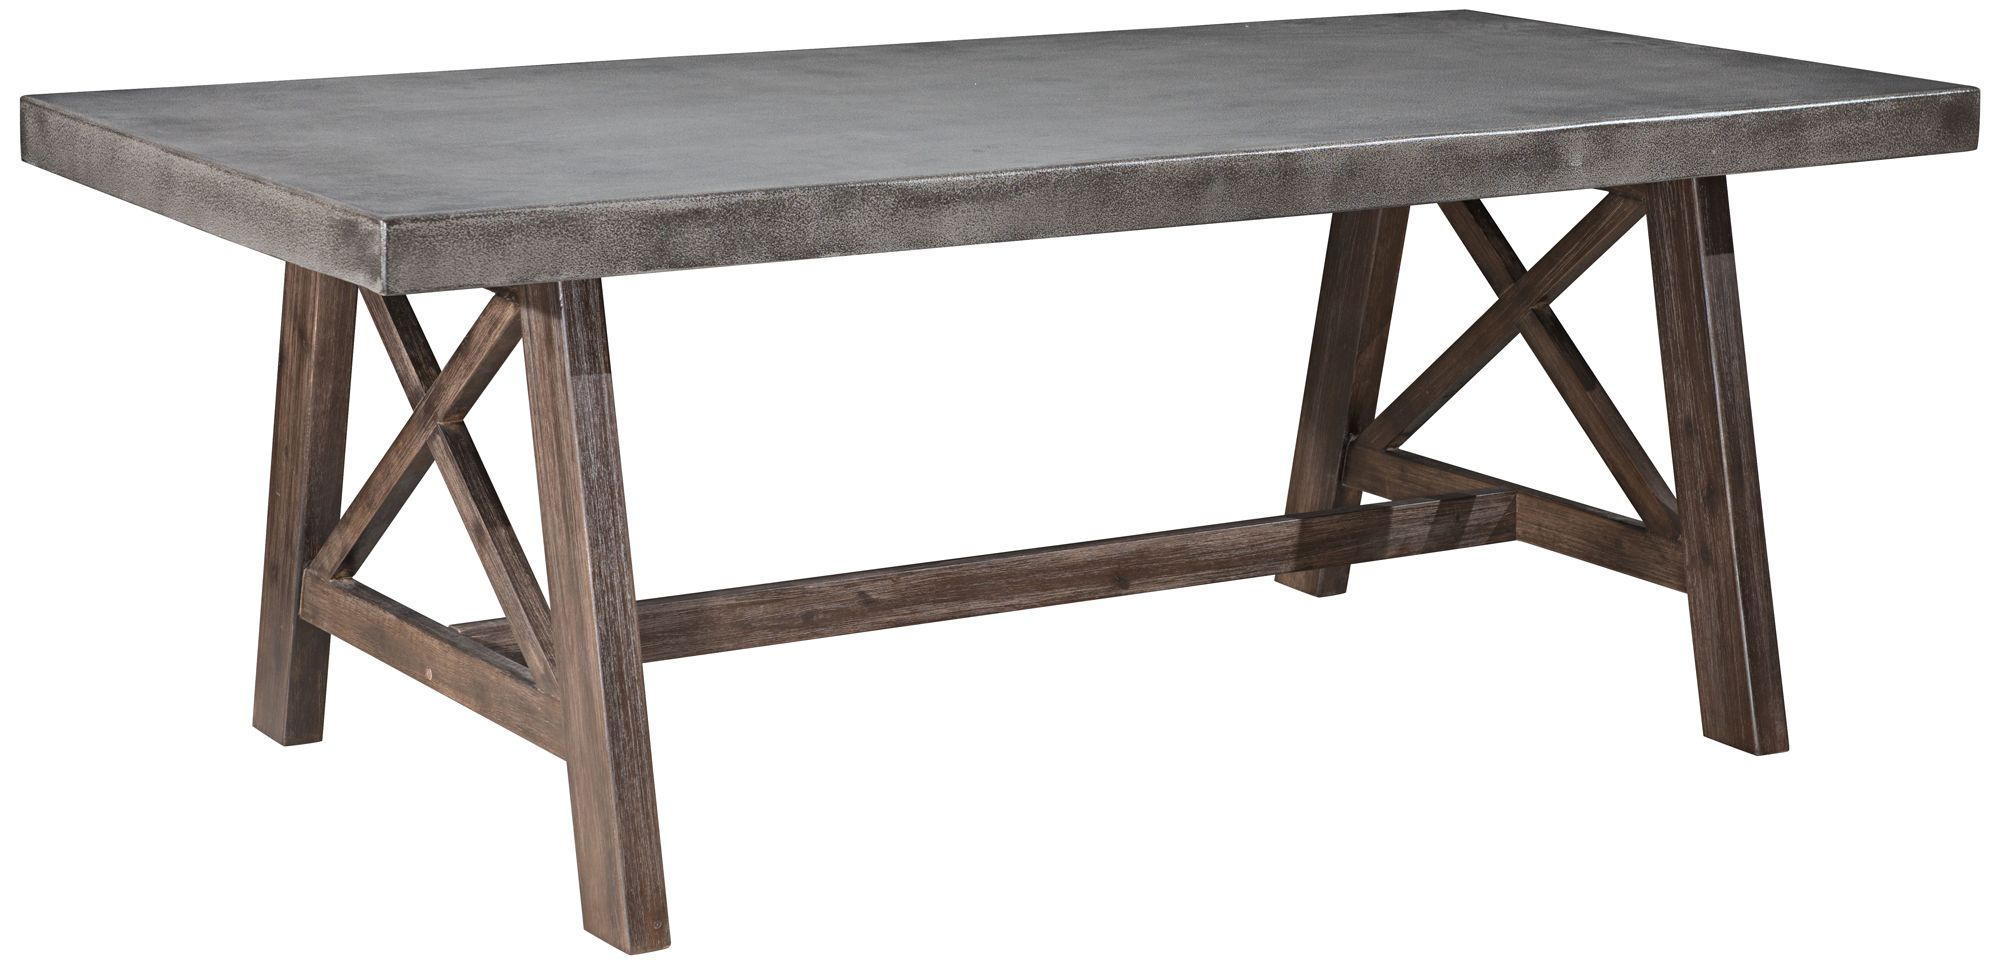 zuo ford cement top and acacia wood outdoor dining table 1y182 rh lampsplus com